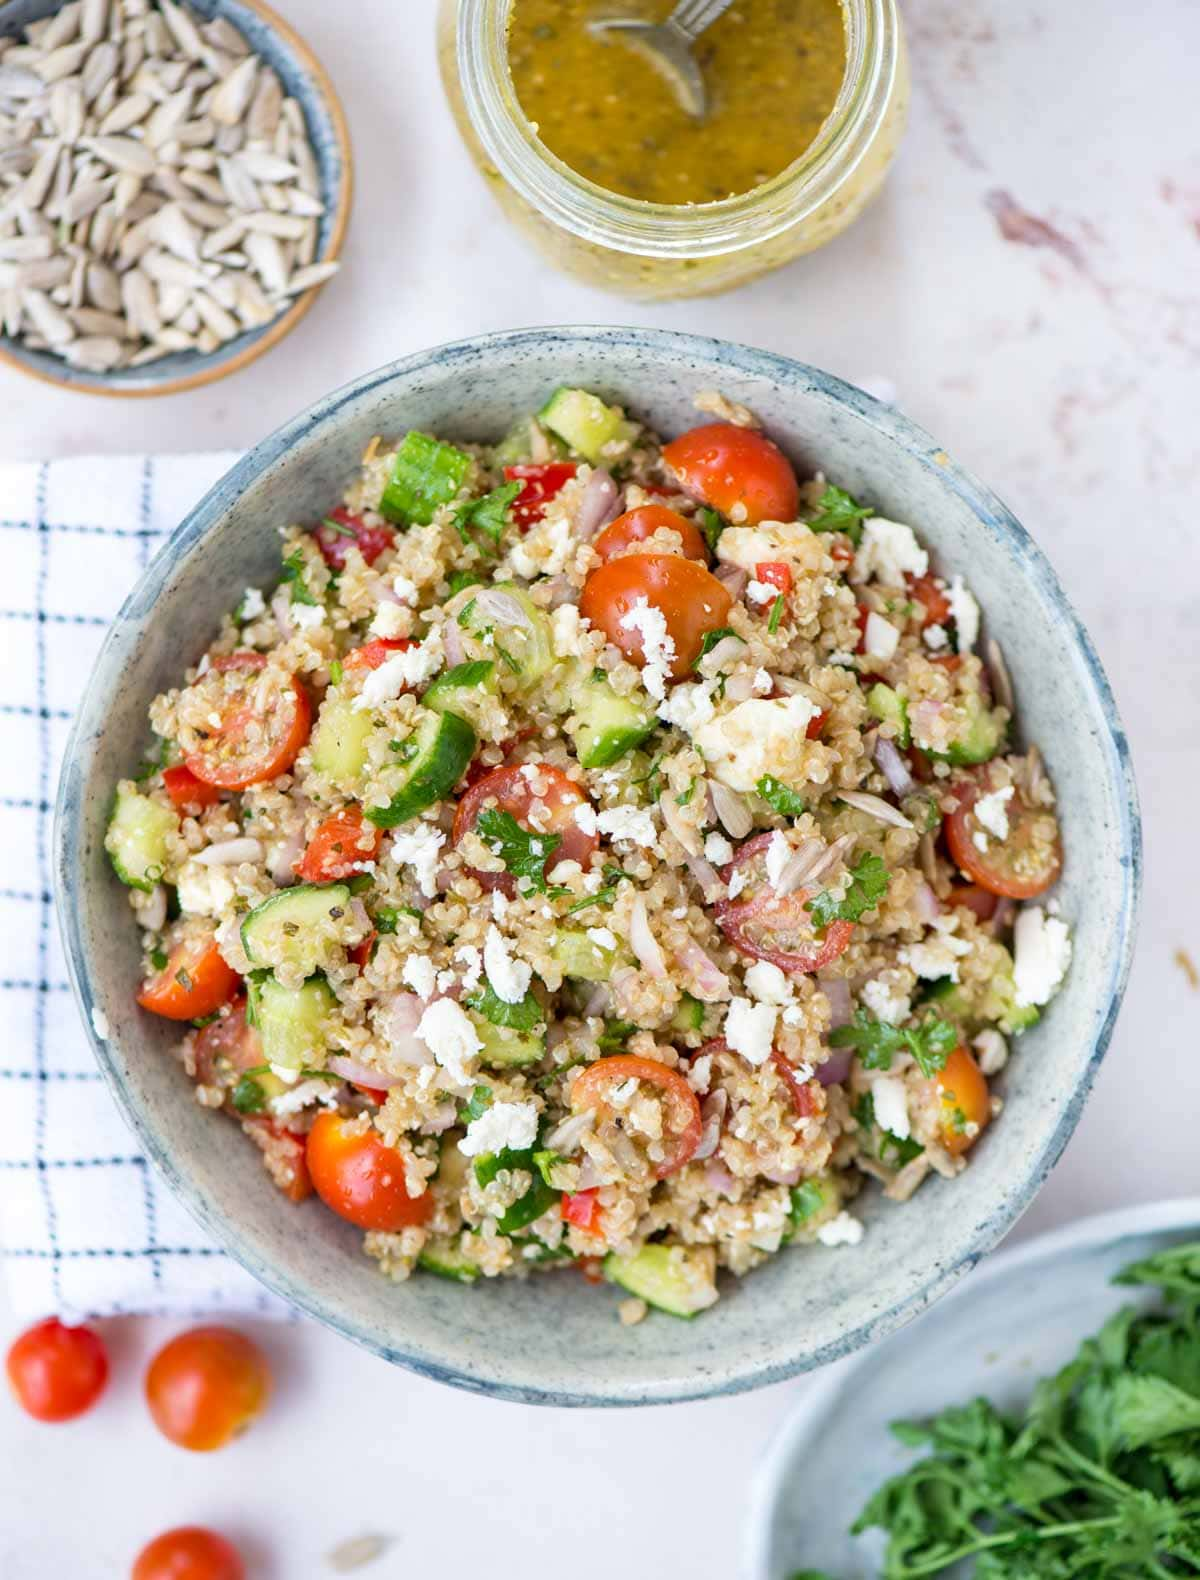 Bowl of Quinoa salad with fresh vegetables, herbs in a red wine vinaigrette